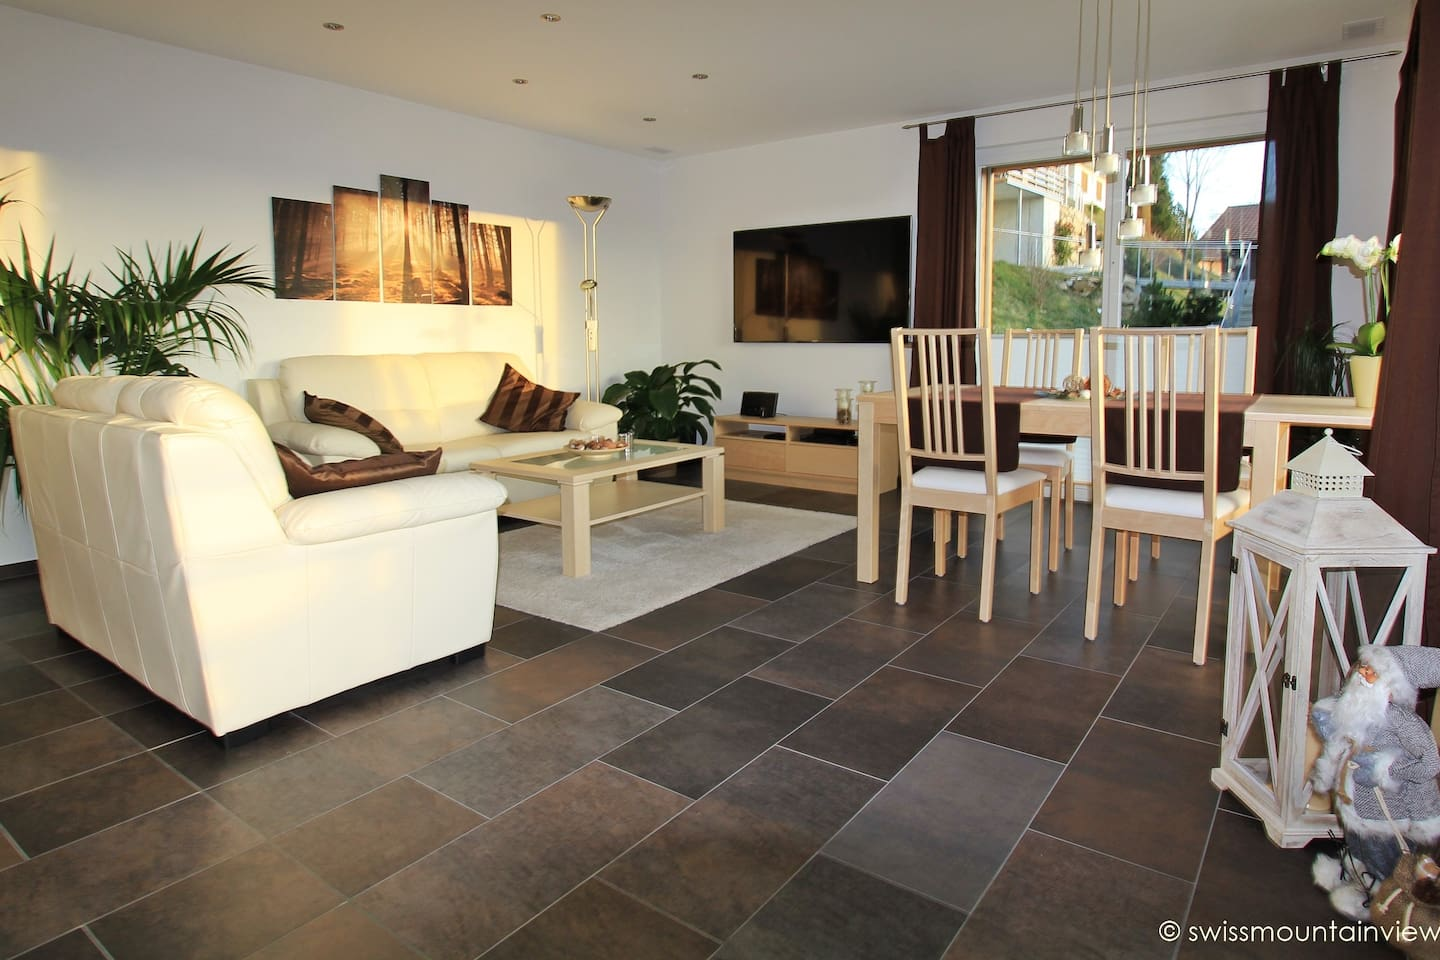 New, modern, luxury and sunny self-catering apartment - feel like home during your vacation